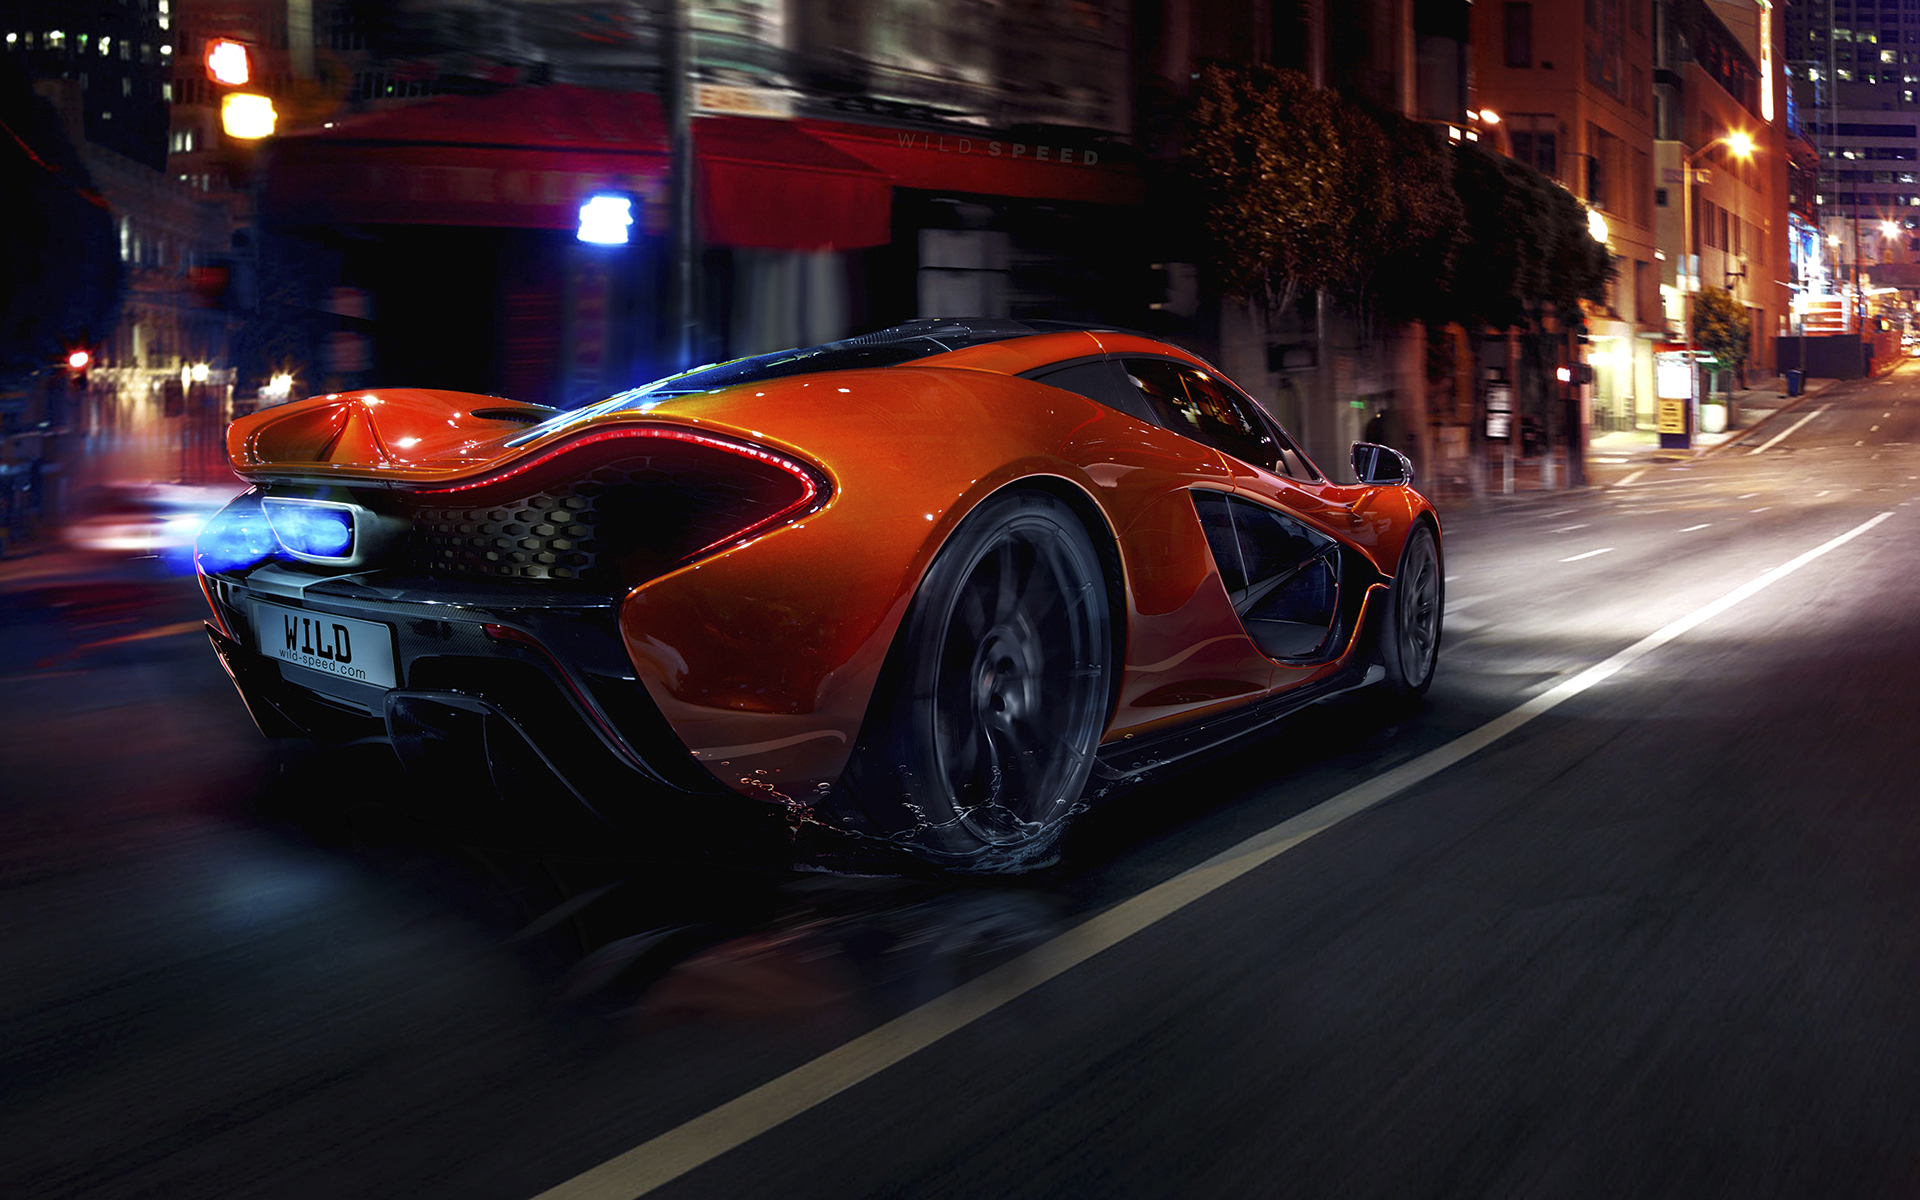 Best Cars And Bikes Wallpapers Daily Wallpaper Mclaren P1 I Like To Waste My Time